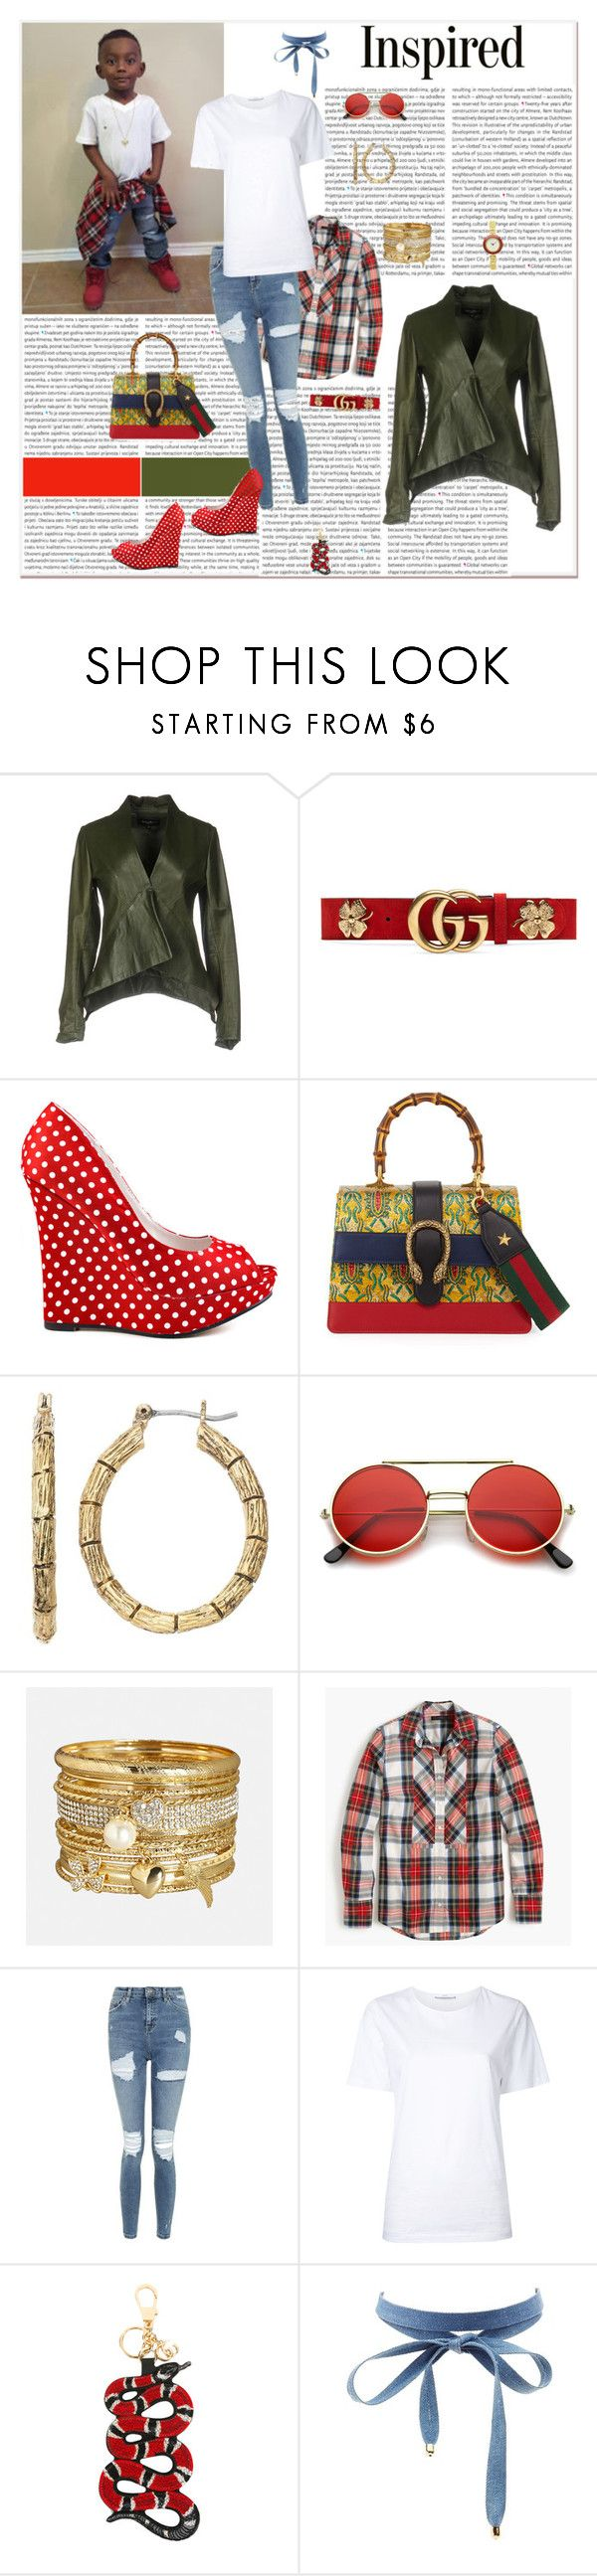 """""""the play'in dress-up, it ain't a game no mo! #SWAGswap"""" by g-vah-styles ❤ liked on Polyvore featuring Adele Fado, Gucci, Michael Antonio, Dana Buchman, ZeroUV, Avenue, J.Crew, Topshop, Astraet and Charlotte Russe"""